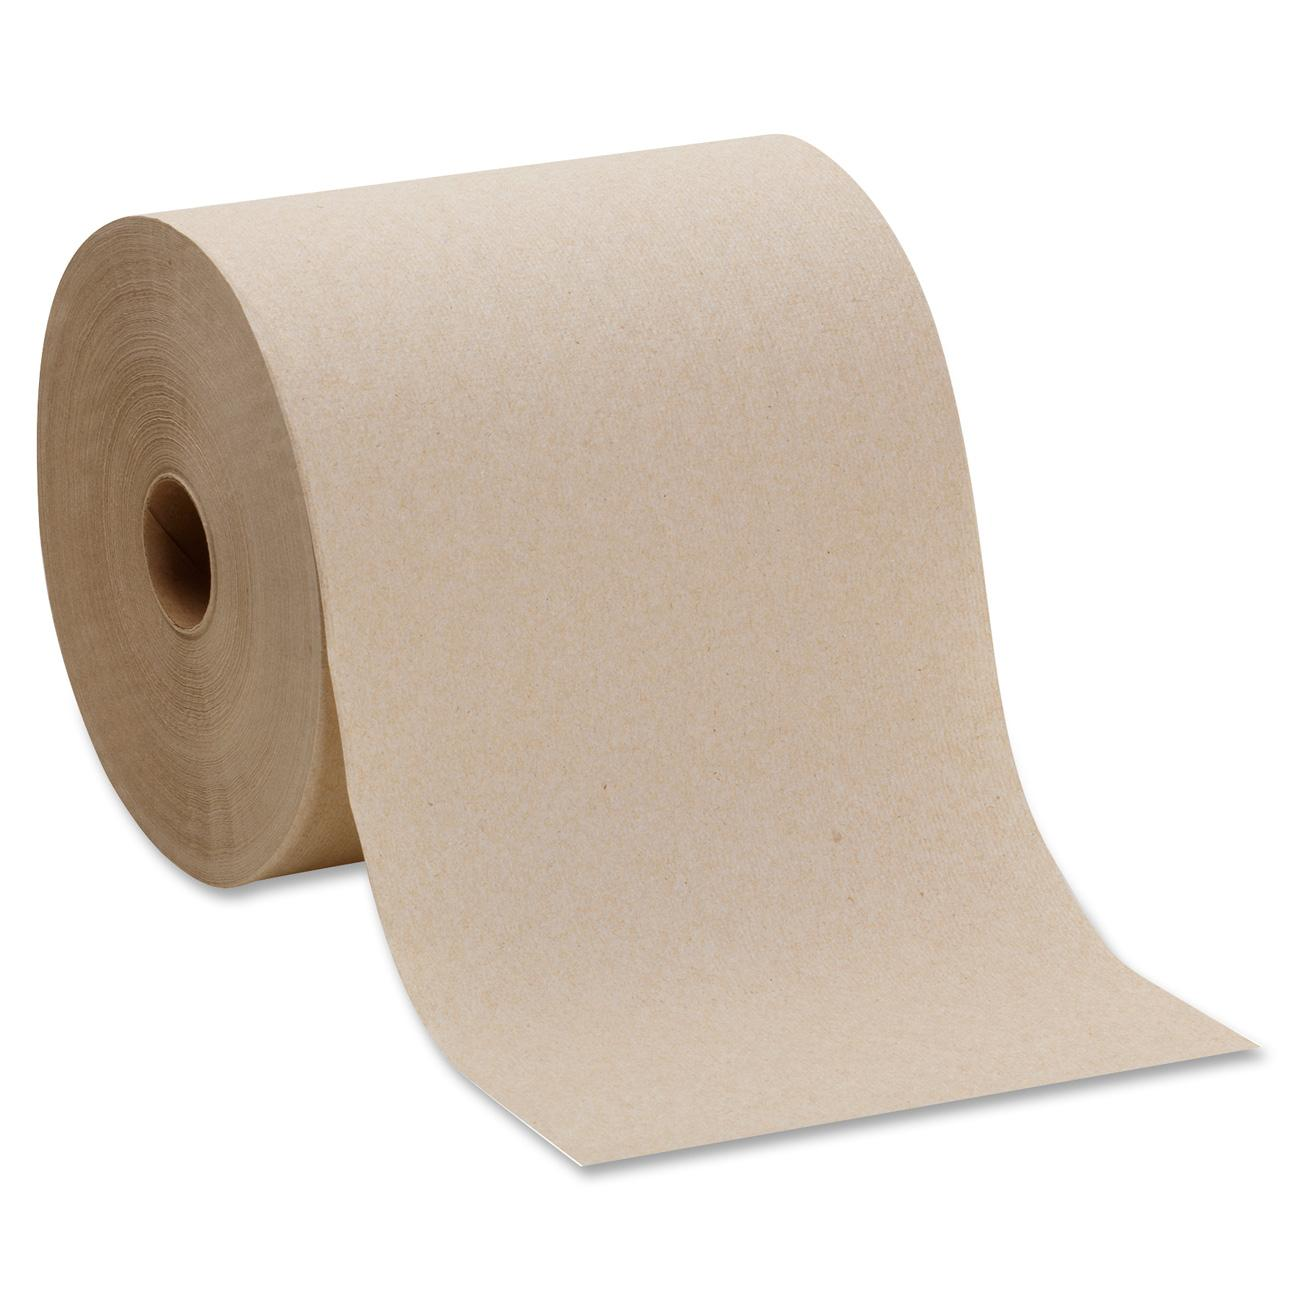 Pacific Blue Basic™ Recycled Hardwound Paper Towel Roll (Previously branded Envision®) by Georgia-Pacific GP PRO, Brown, 26301, 800 Feet Per Roll, 6 Rolls Per Case